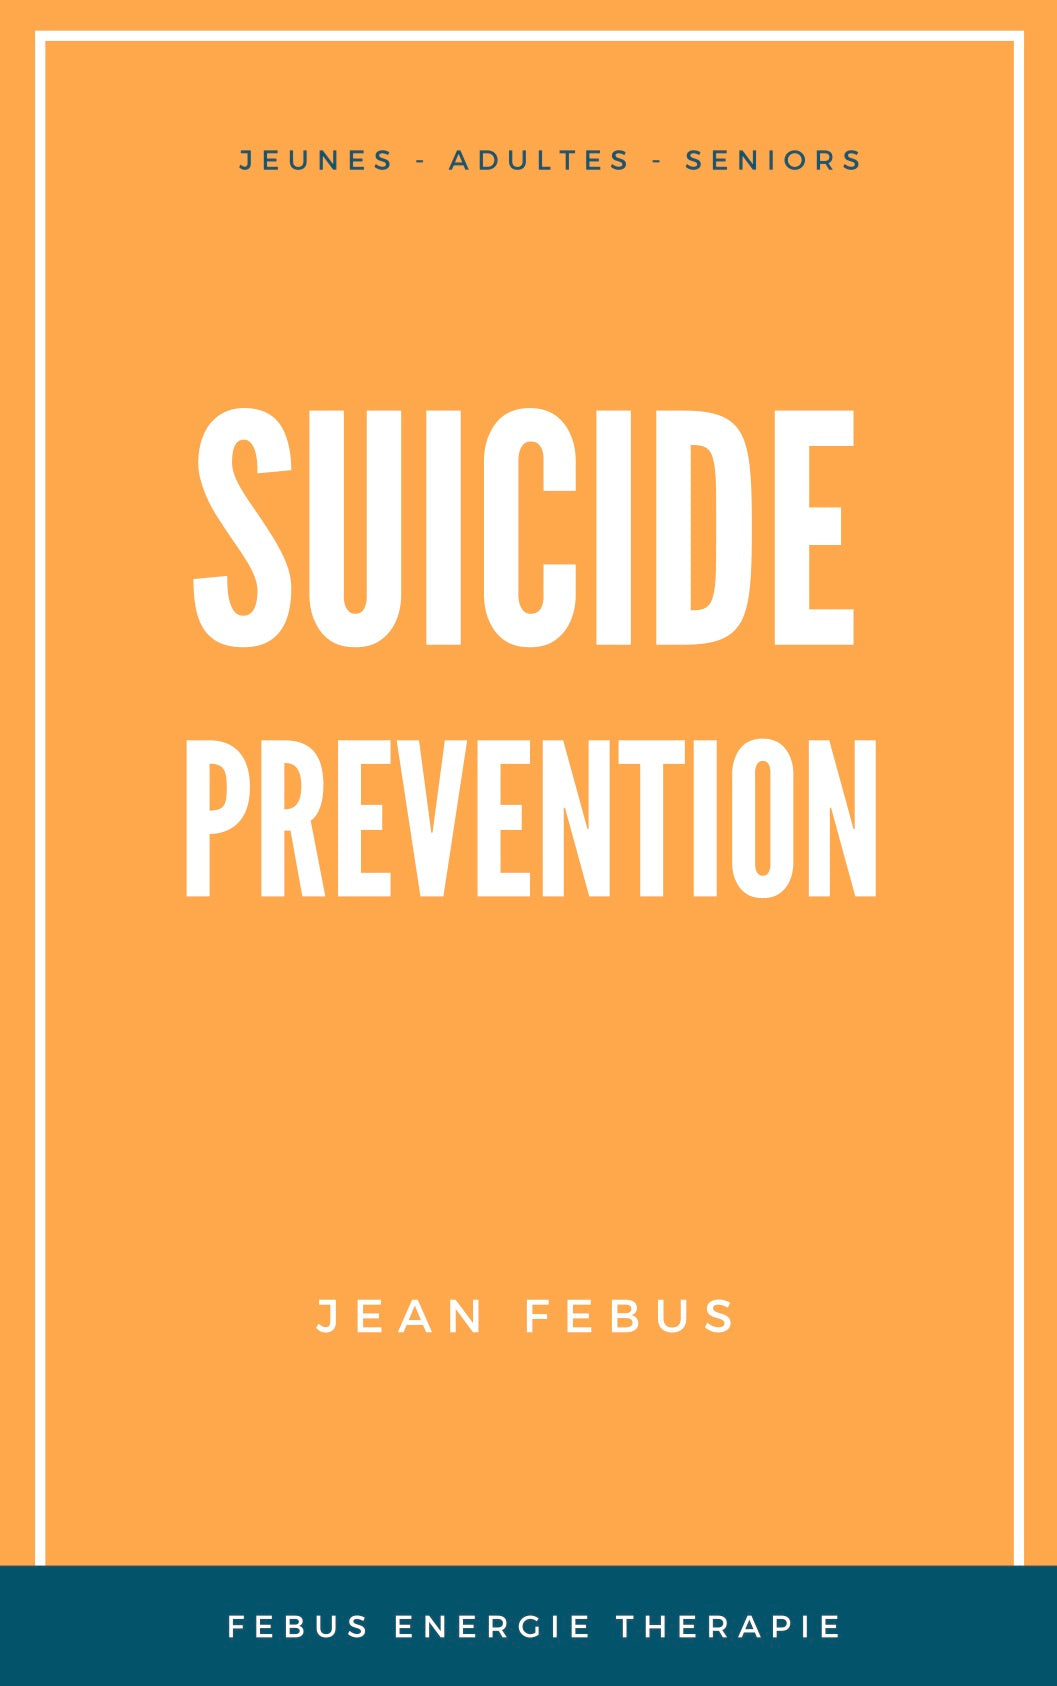 Jean Febus Guide Suicide Prevention